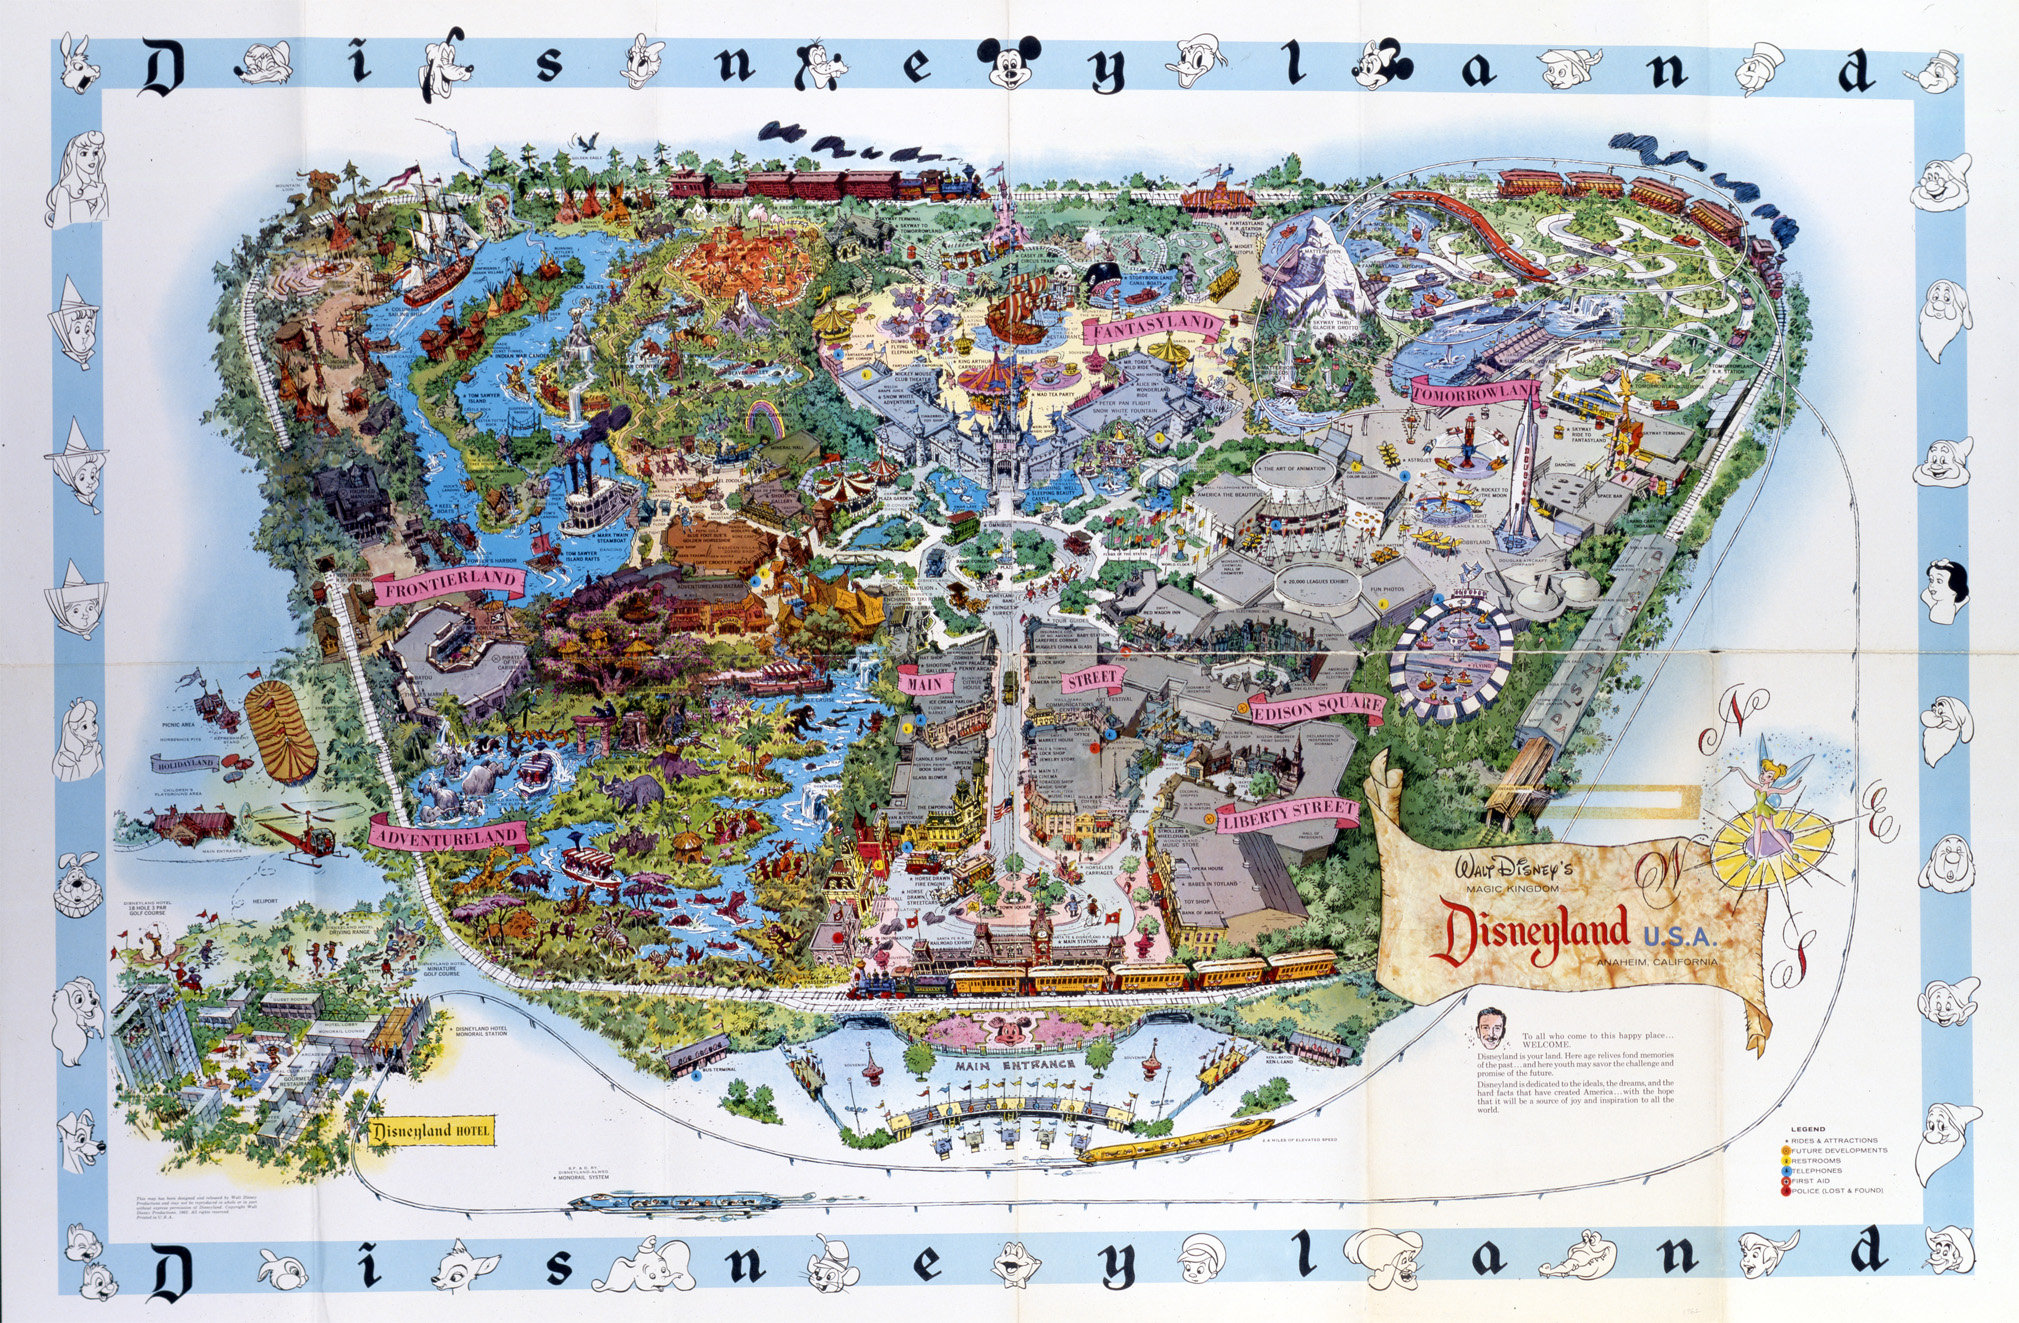 Disneylands Evolution Through Maps Design Architecture